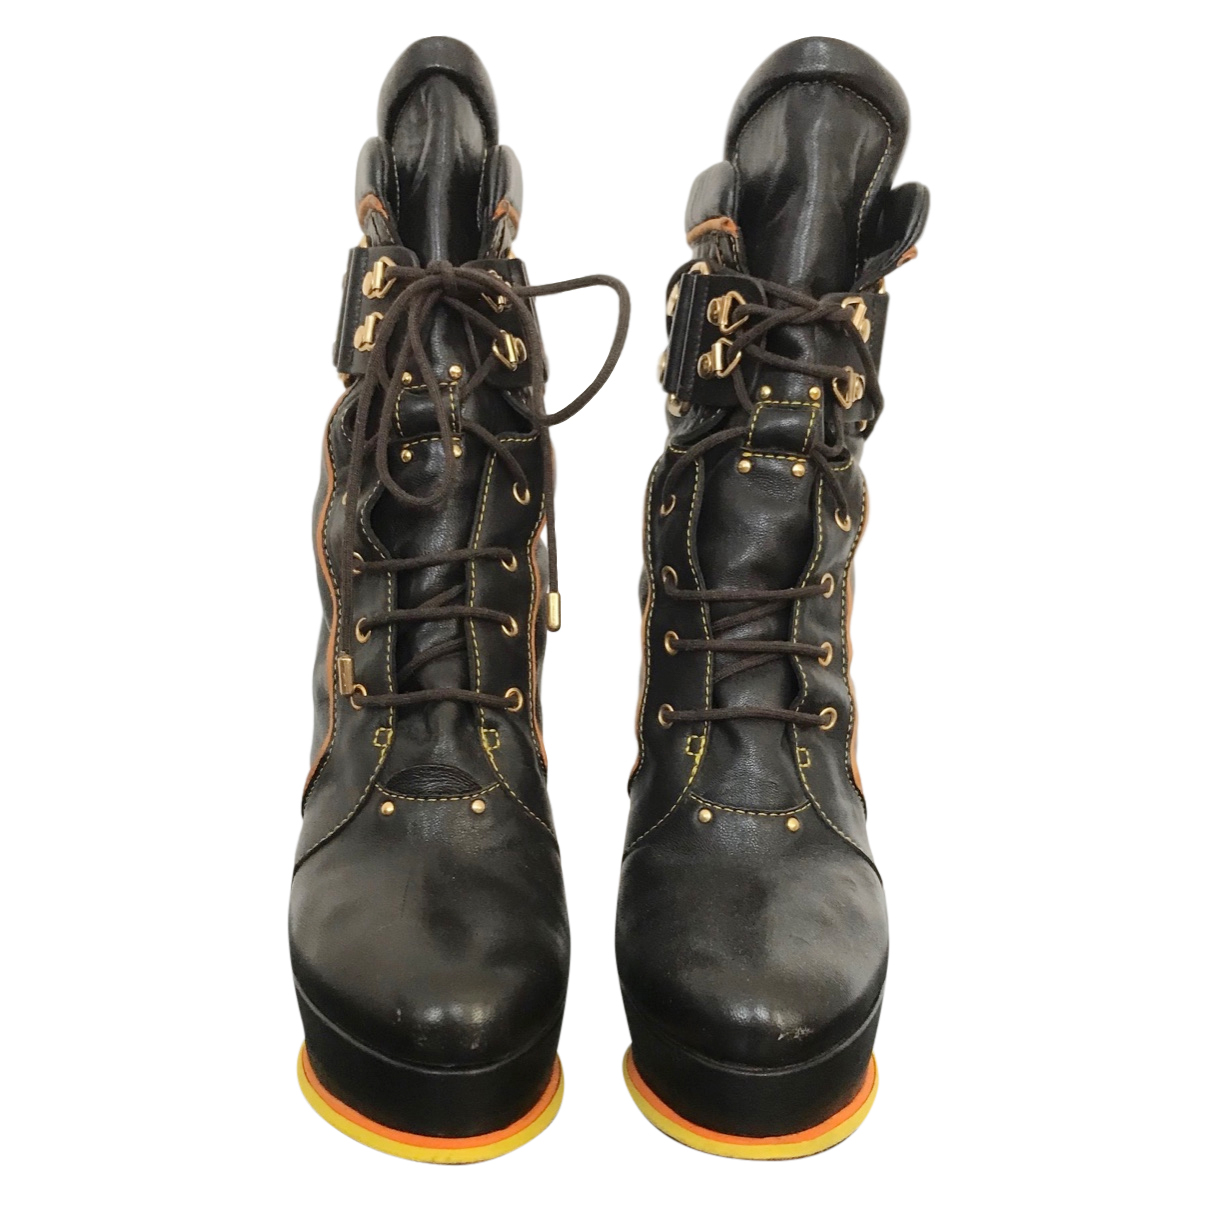 Vicini brown leather lace-up boots